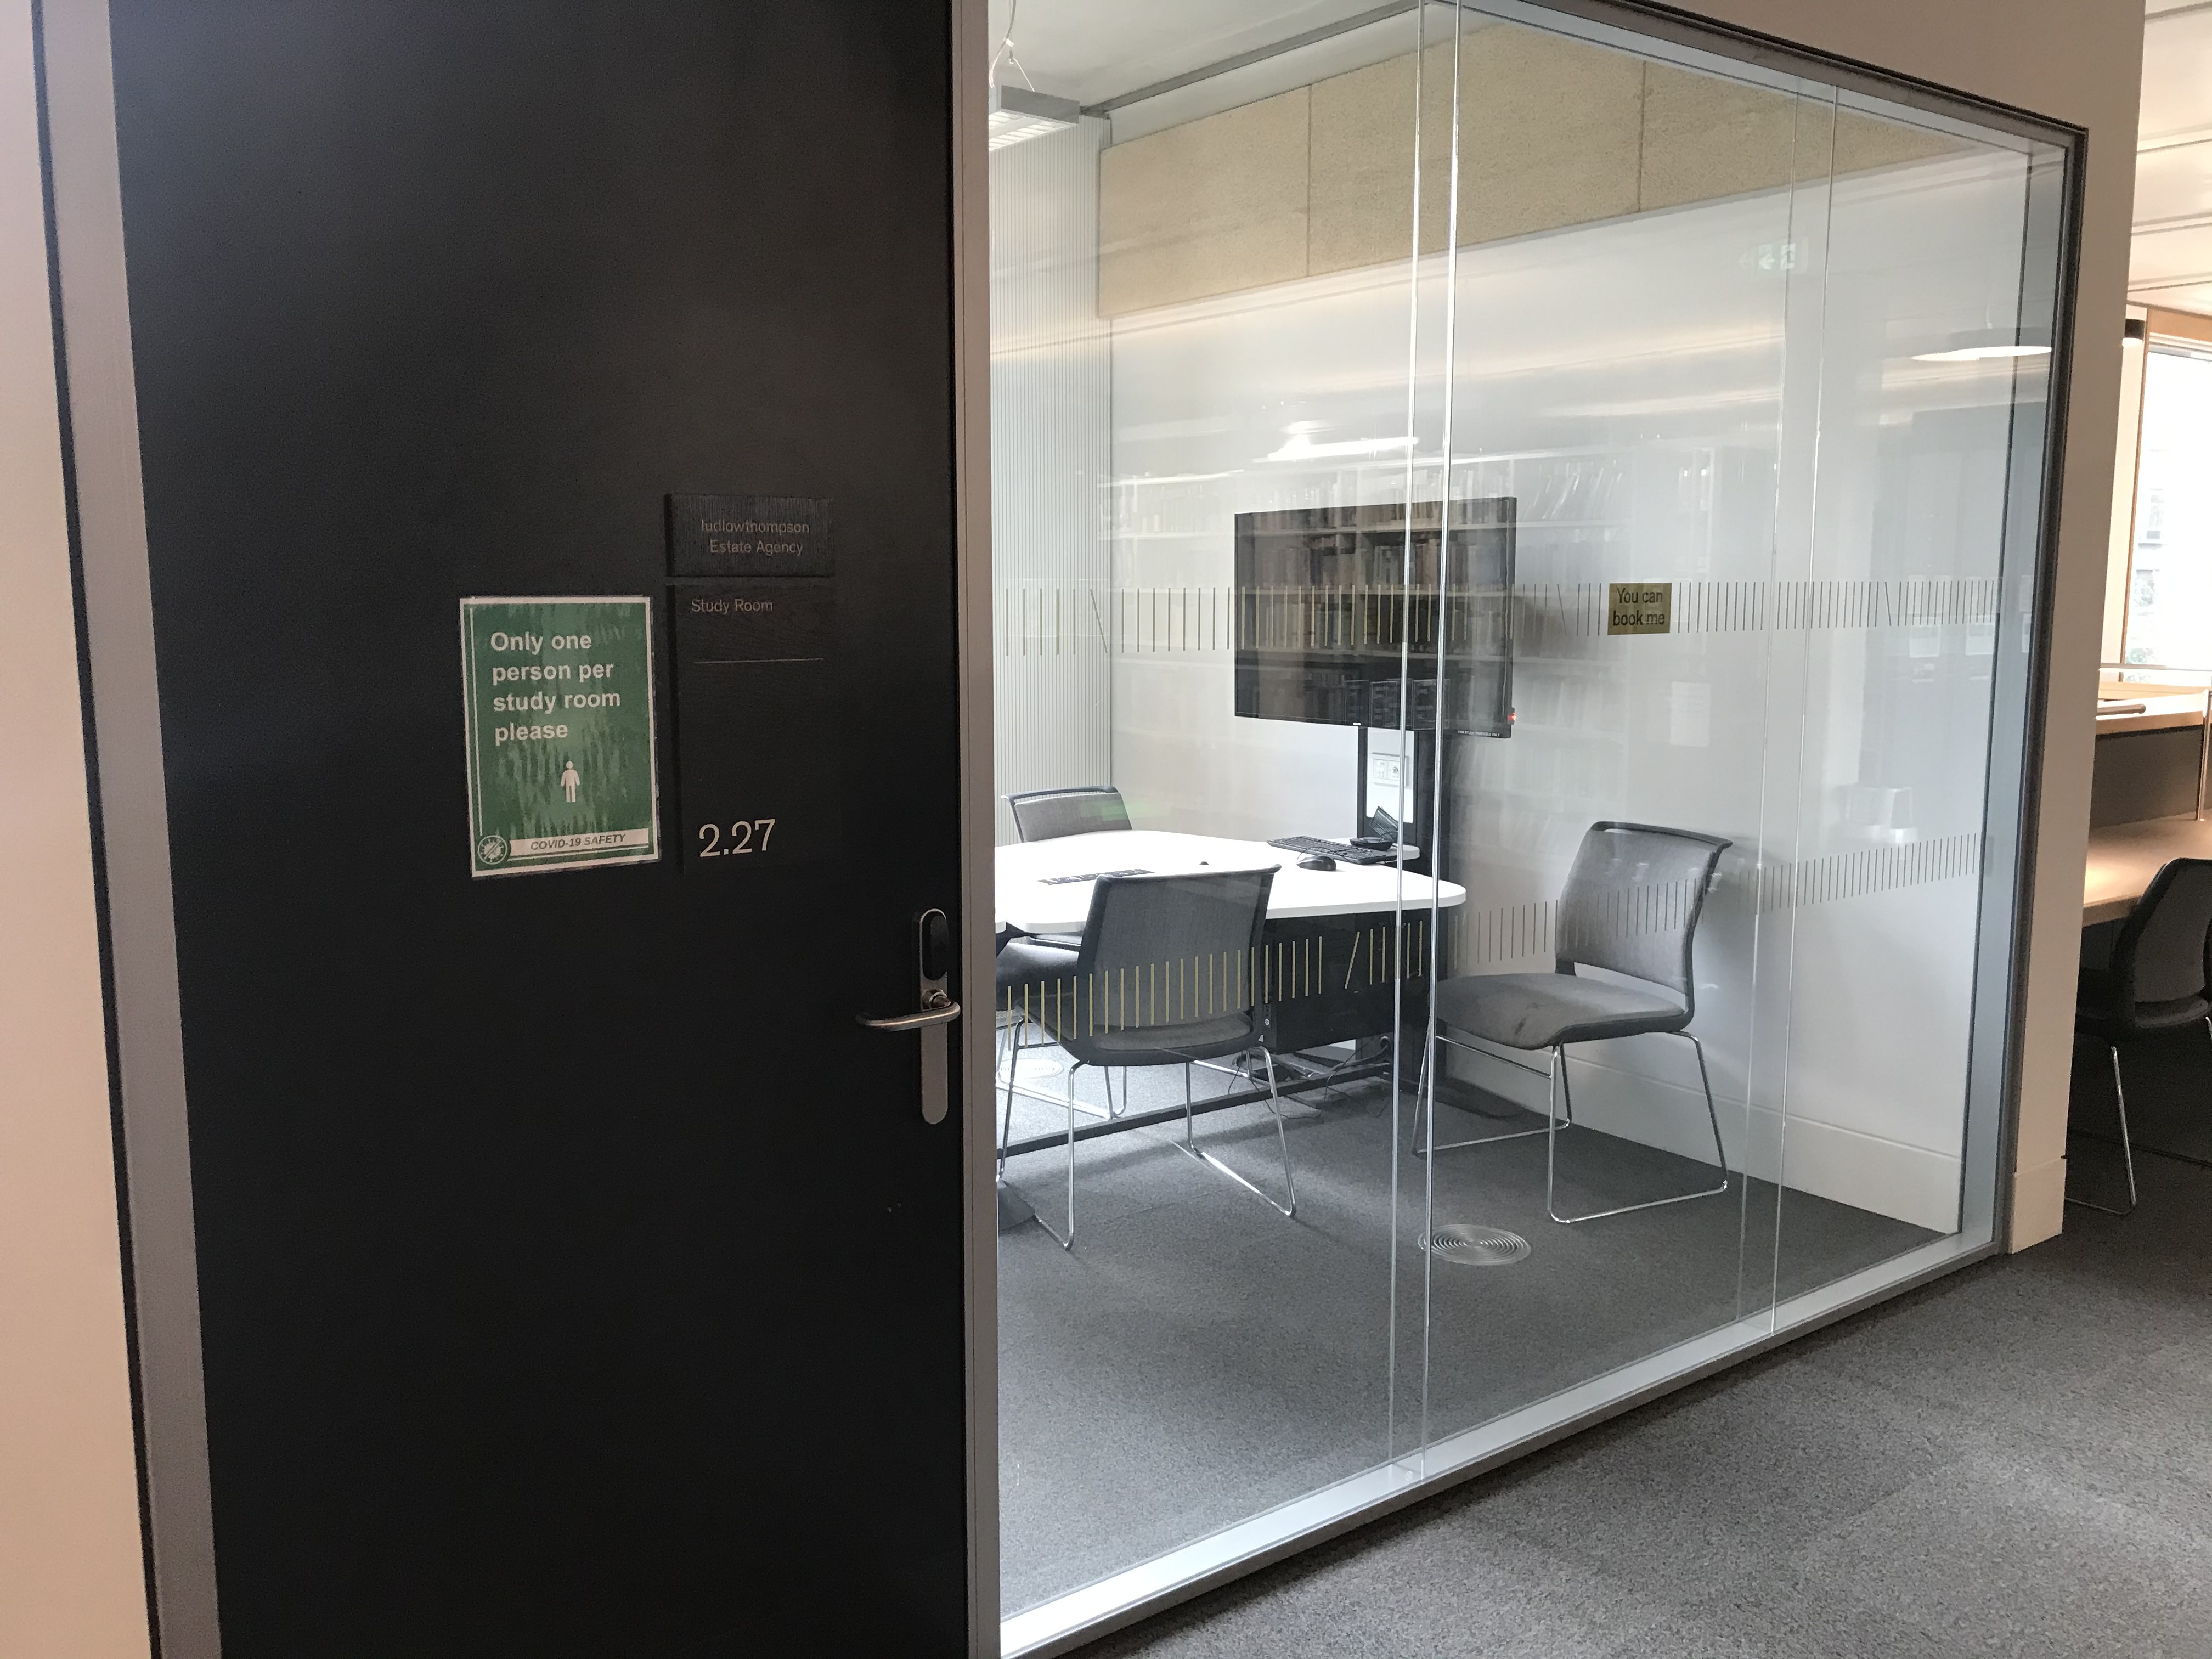 study room with green sign indicating one person use only